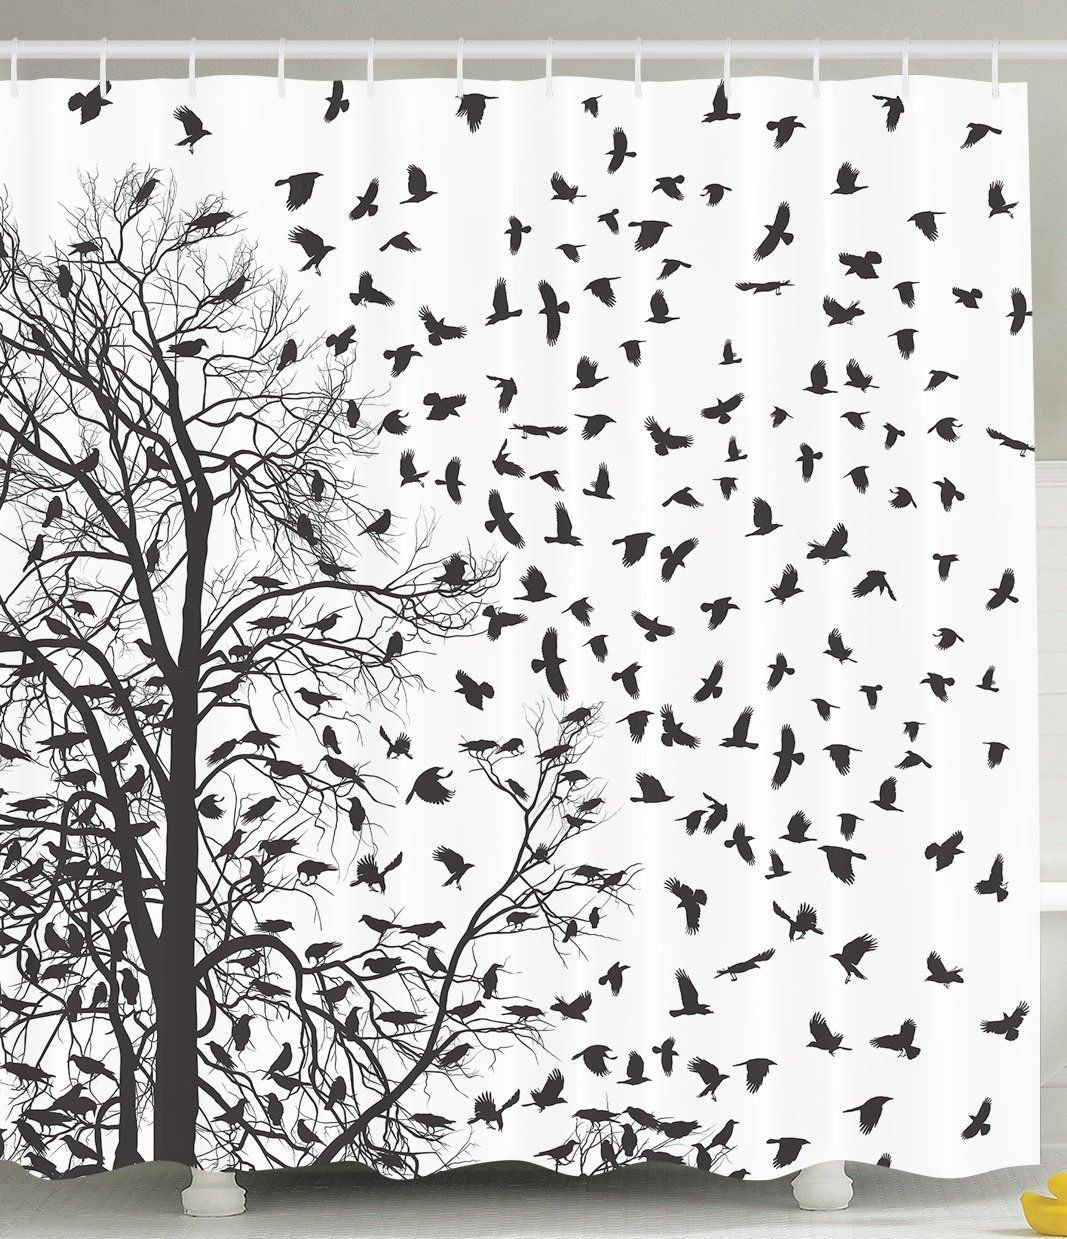 Birch tree shower curtains - Beautiful Black Tree With Birds Shower Curtain For The Bathroom